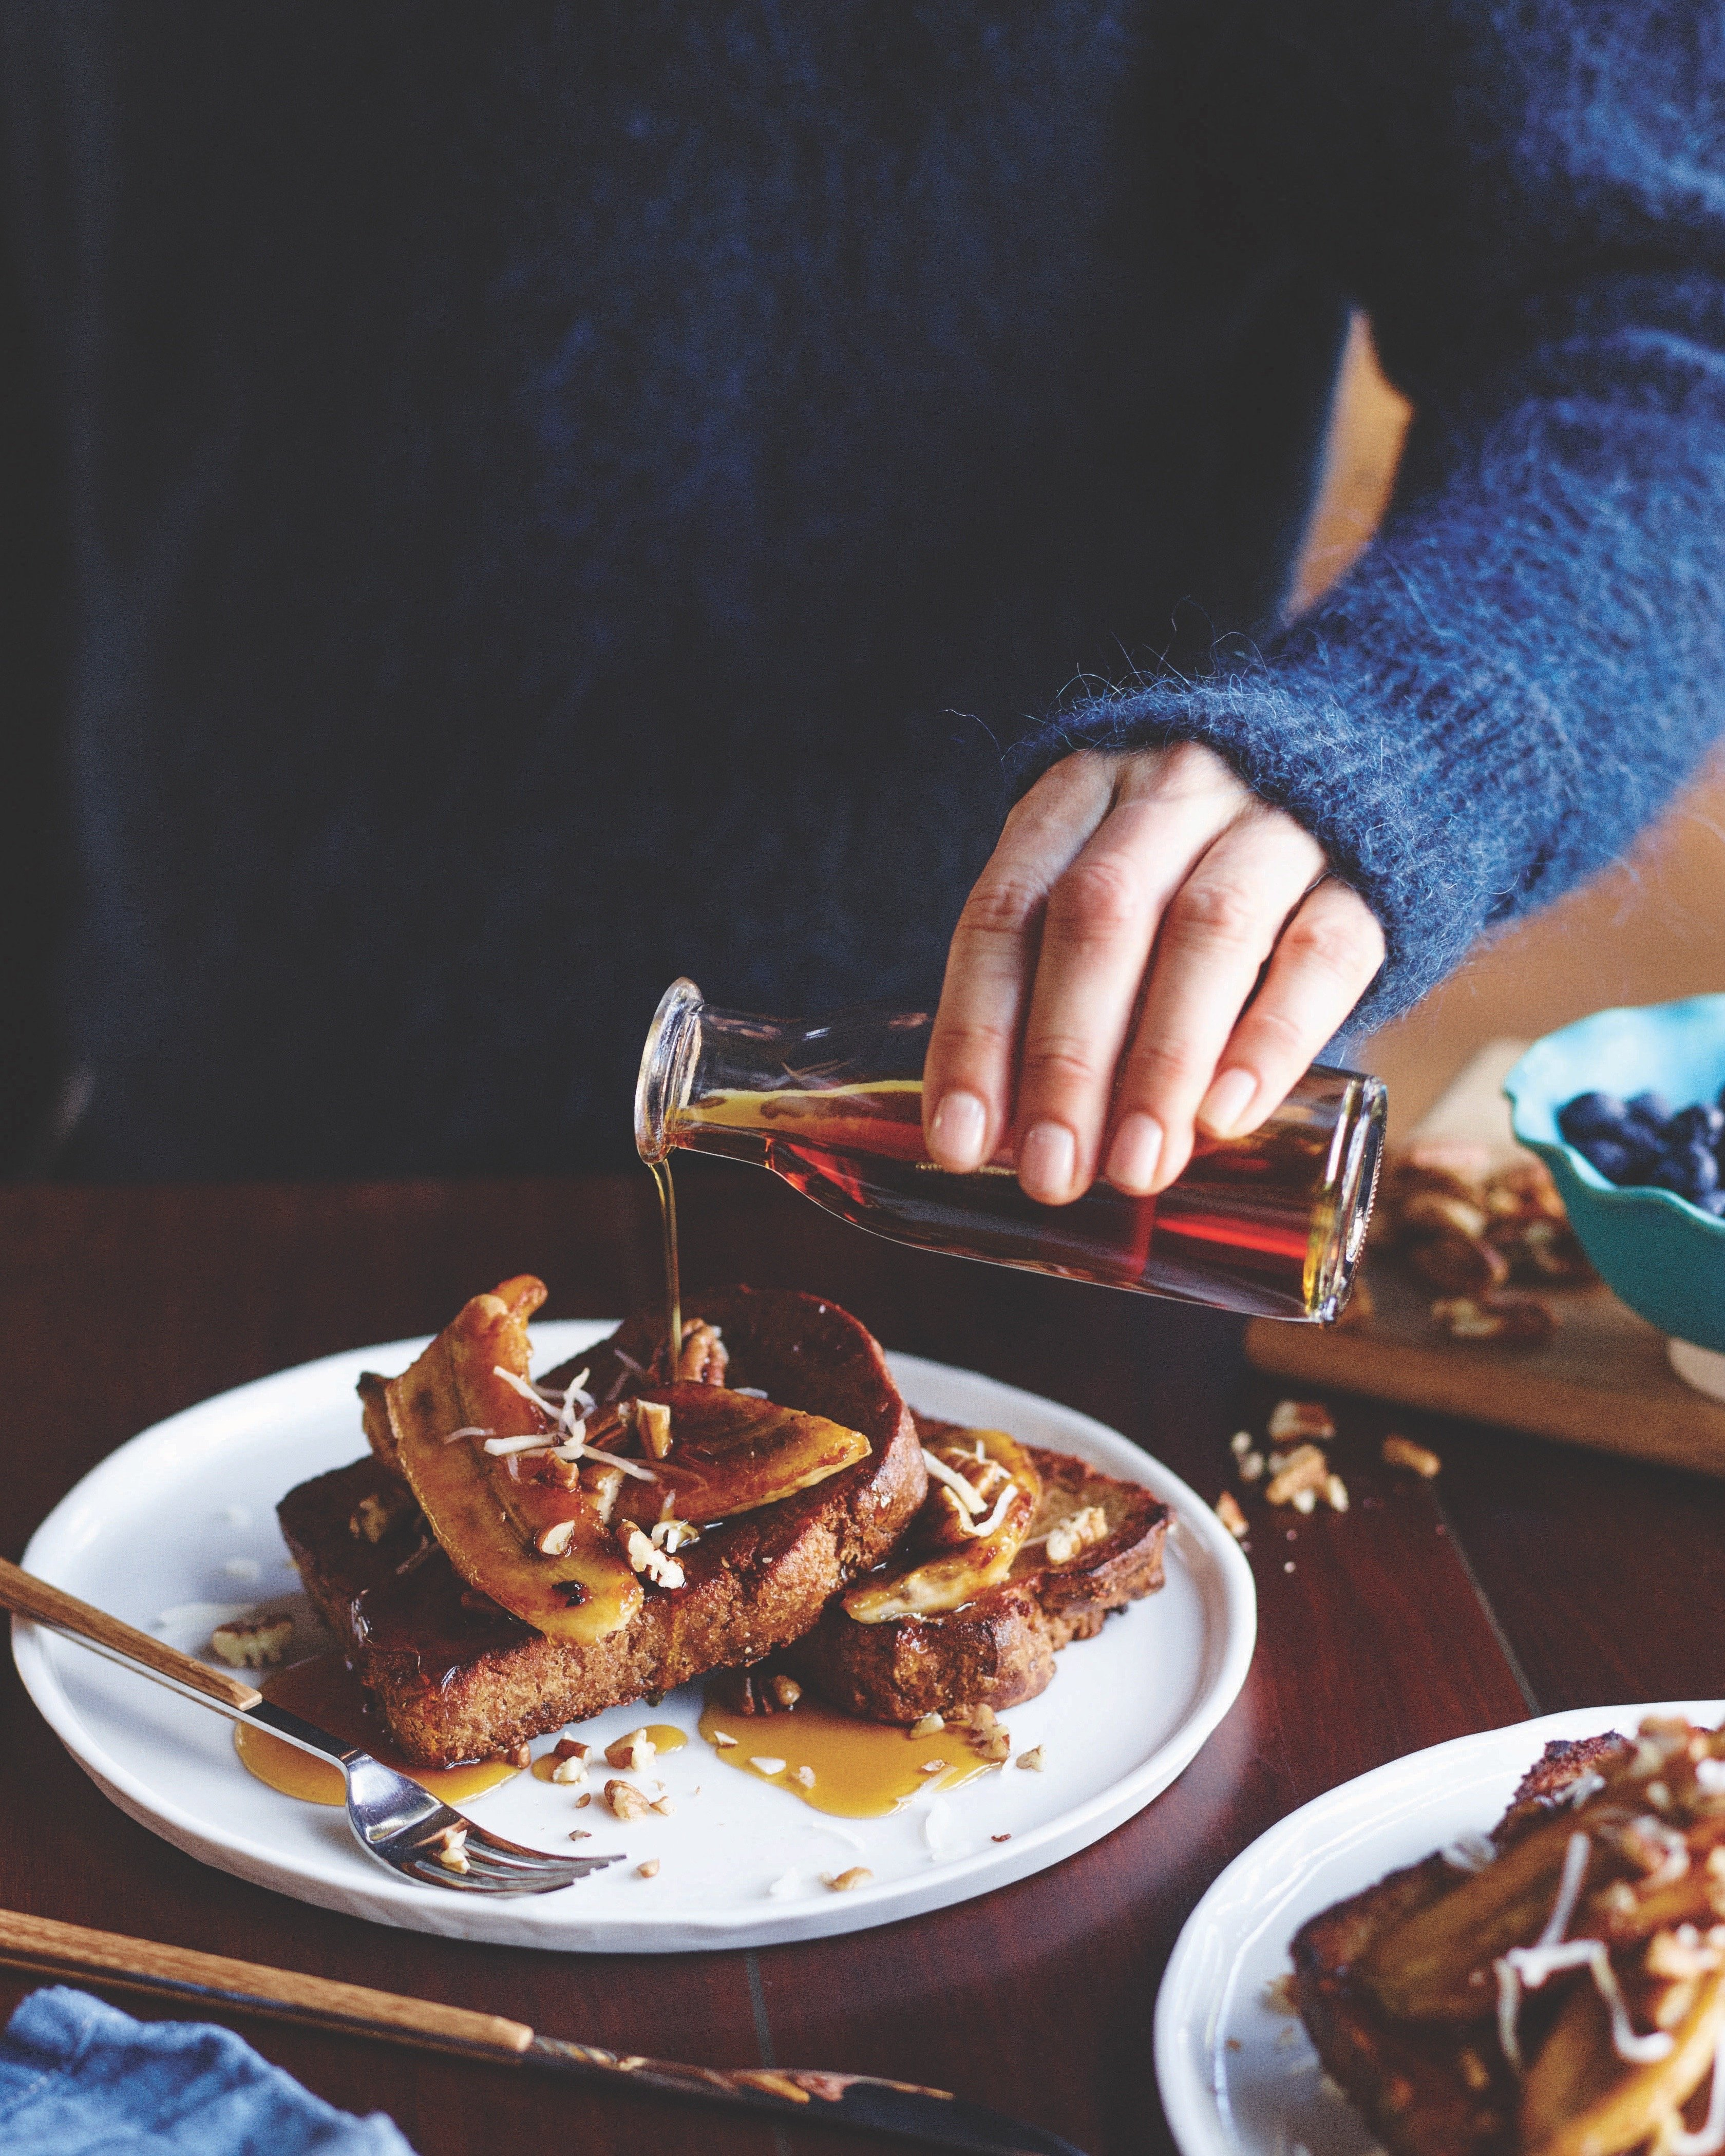 Fabulous Blender French Toast (Allergy Friendly) from Tess Masters on 100 Days of Real Food